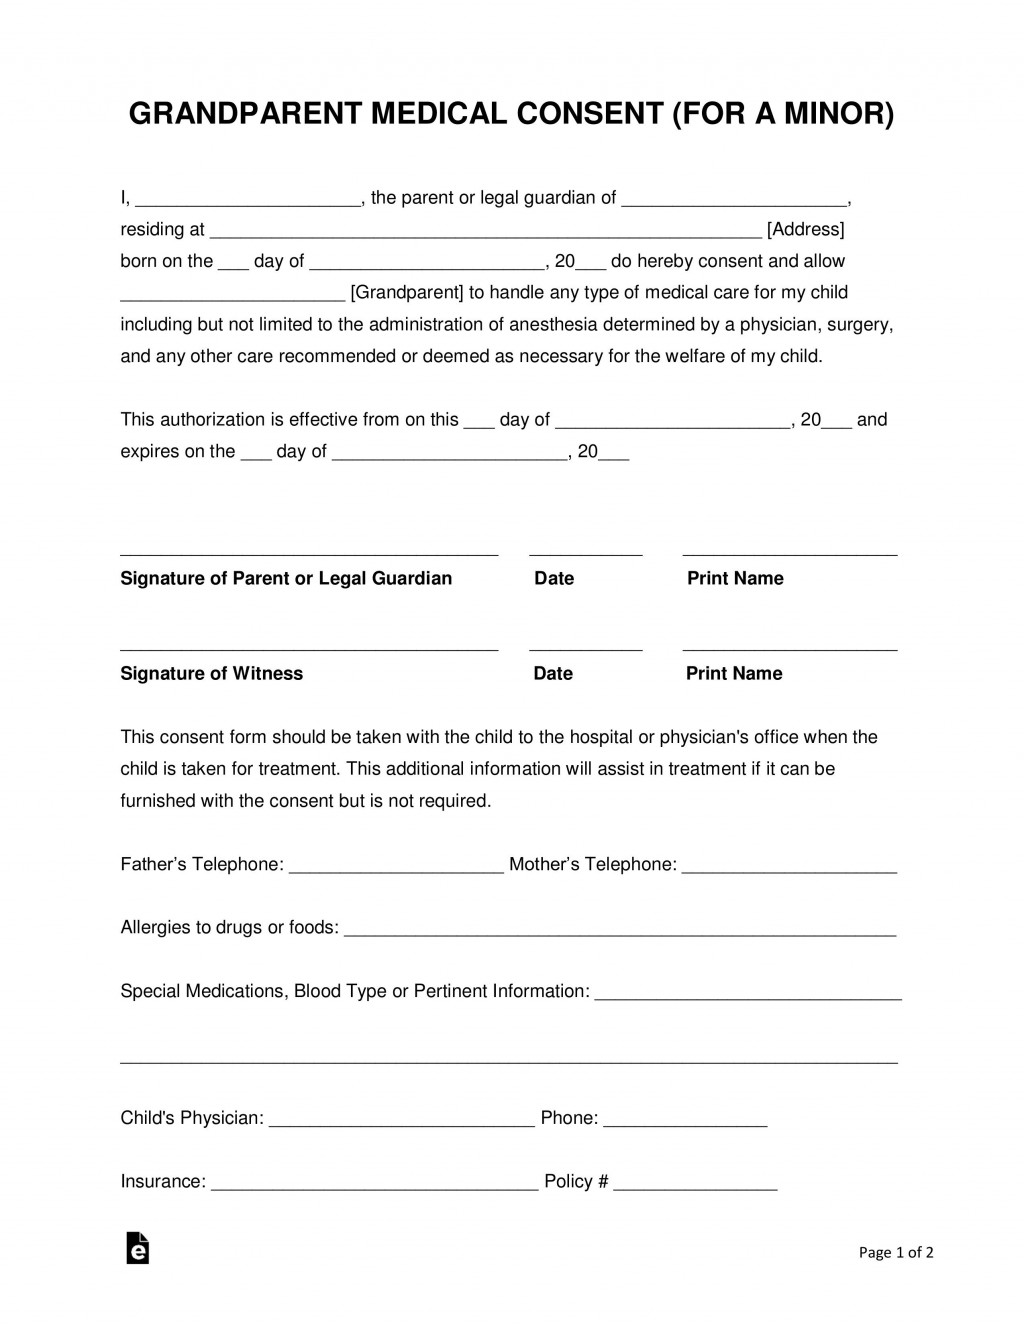 007 Incredible Medical Consent Form Template Sample  Templates FreeLarge